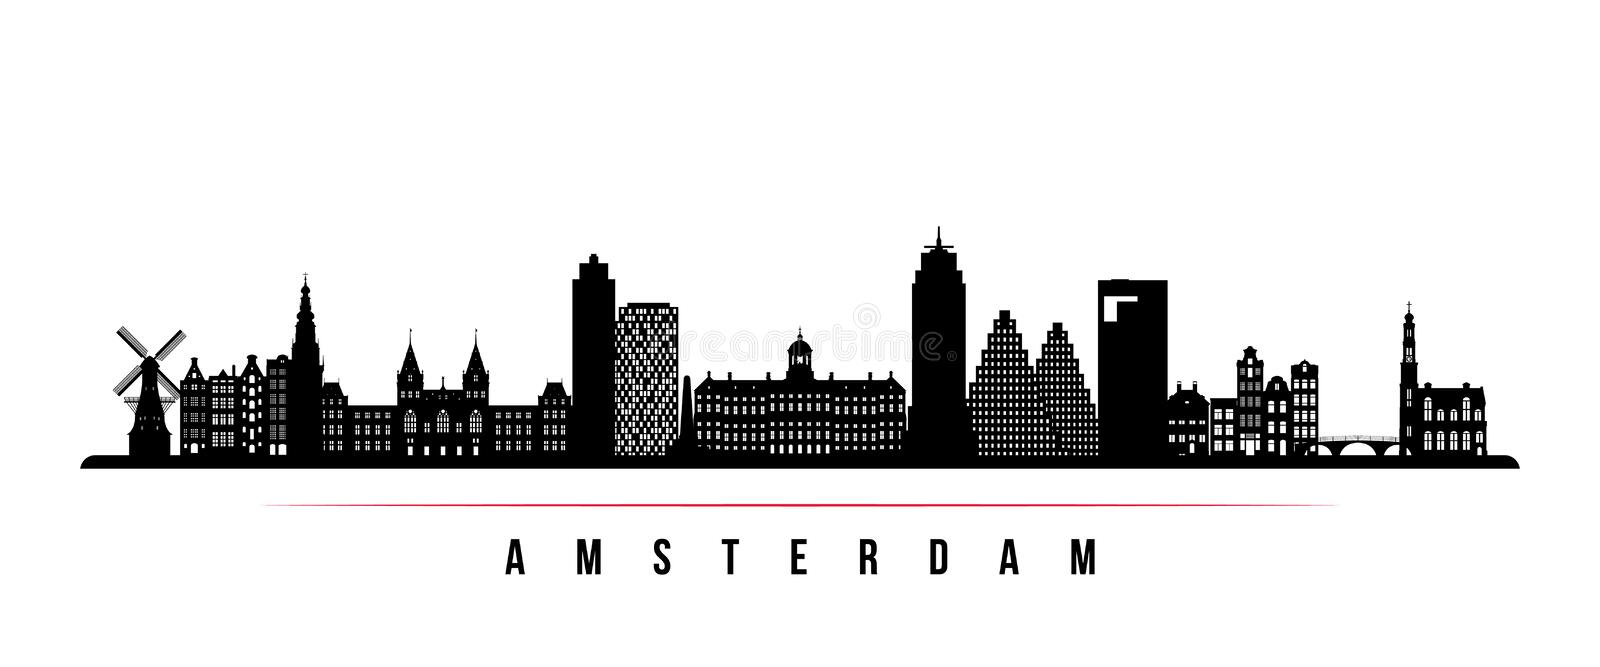 Amsterdam city skyline horizontal banner. Black and white silhouette of Amsterdam city, Netherlands. Vector template for your design stock illustration